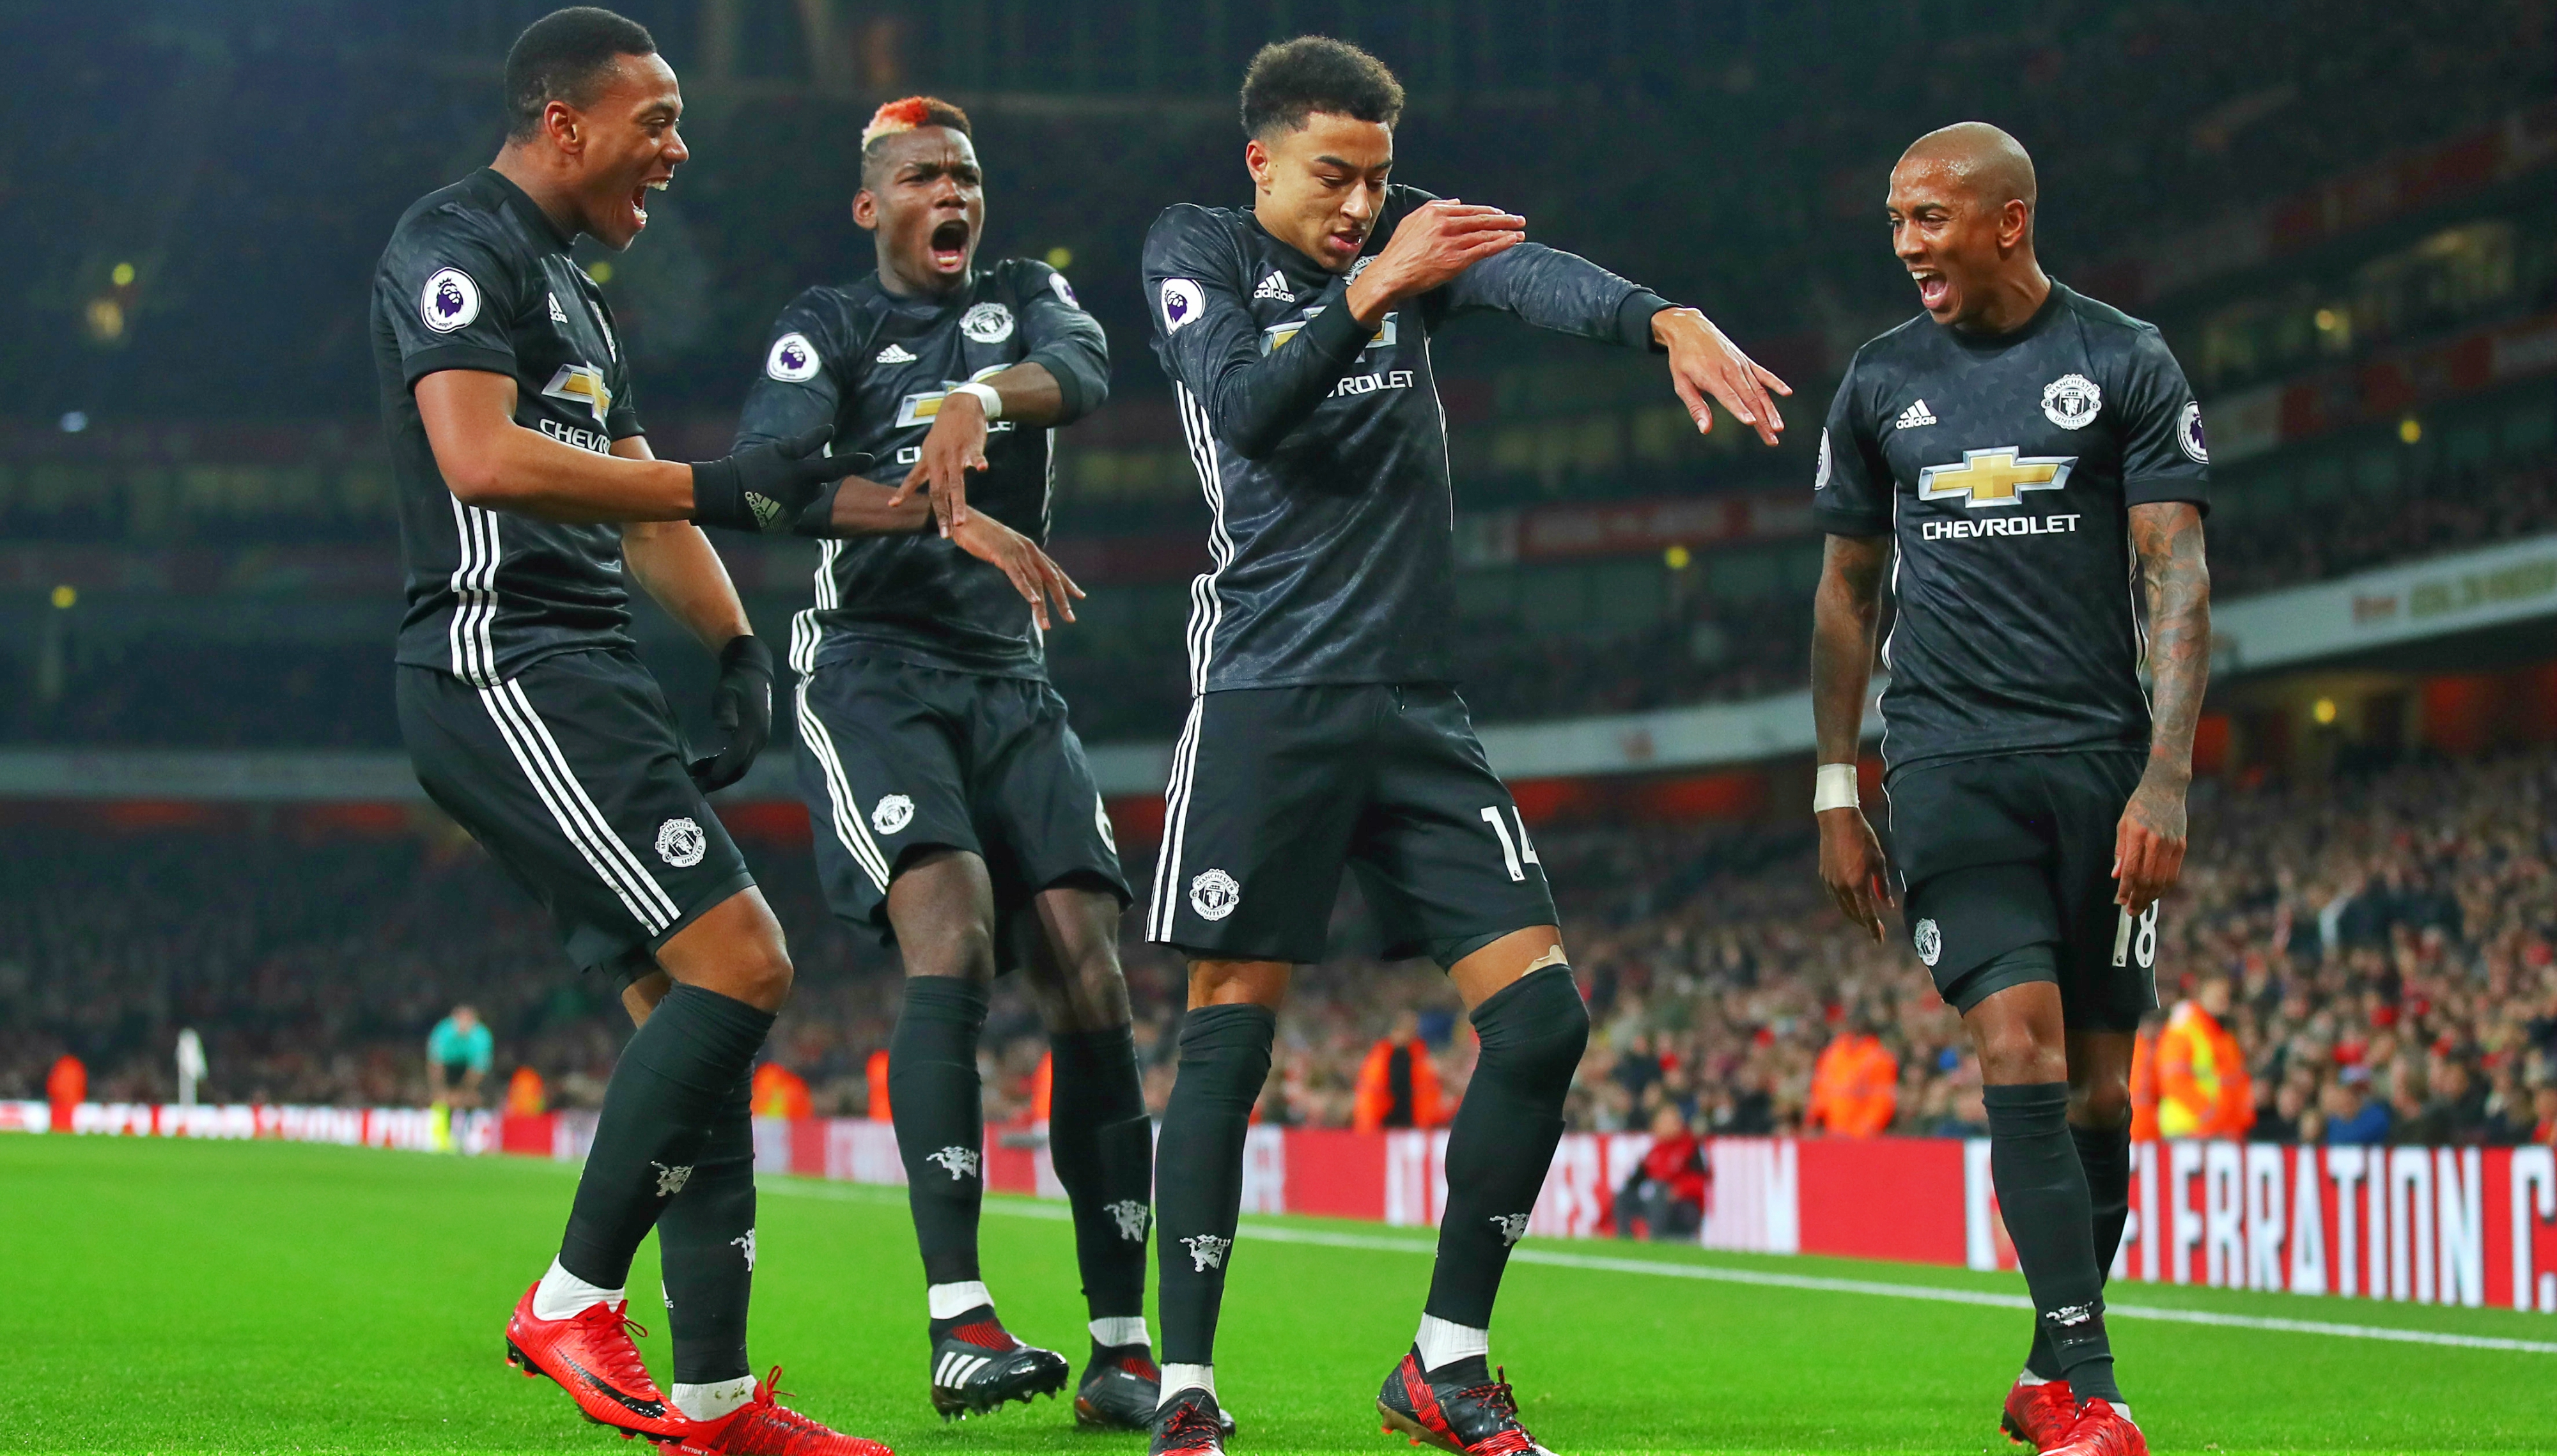 Man United News: Jesse Lingard, The Man Who Dances To His